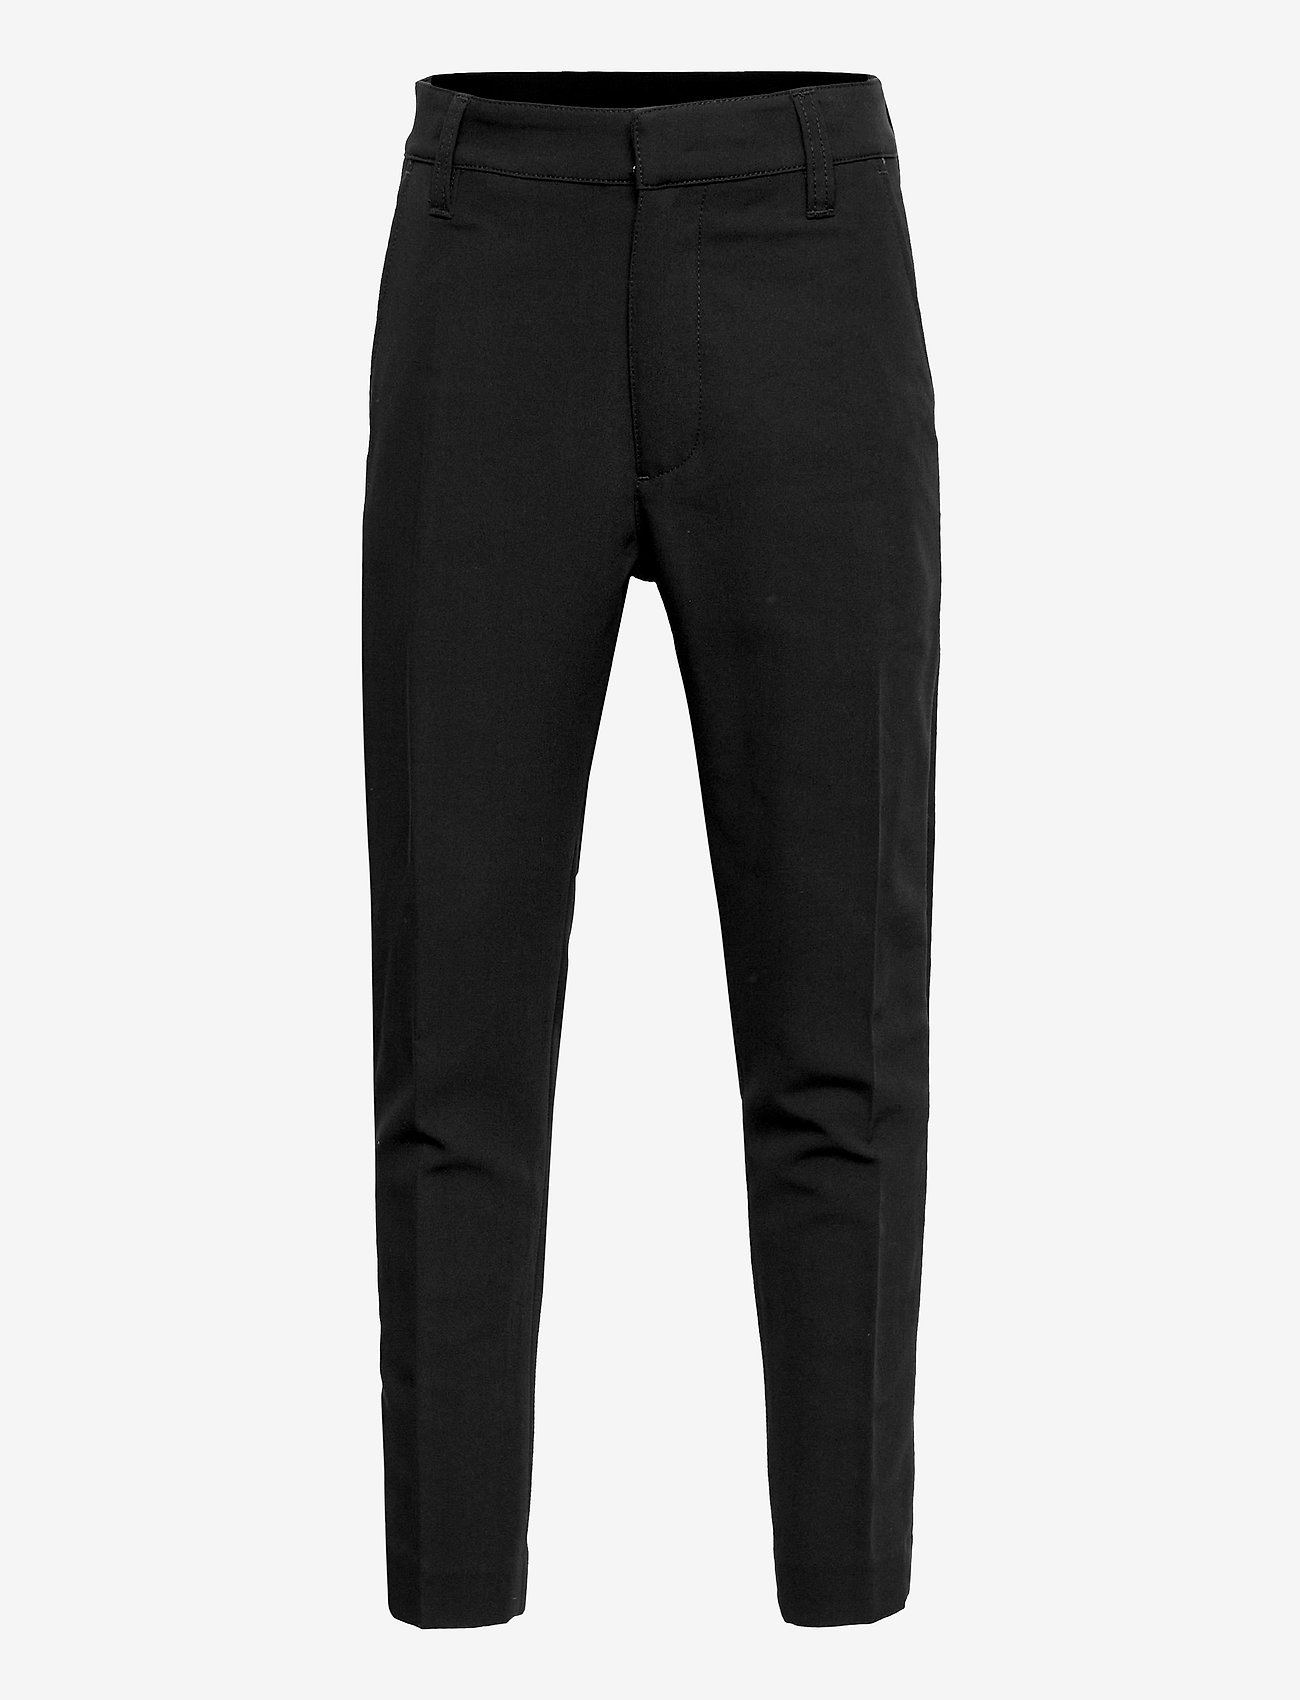 Diesel - PMAKY TROUSERS - trousers - nero - 0